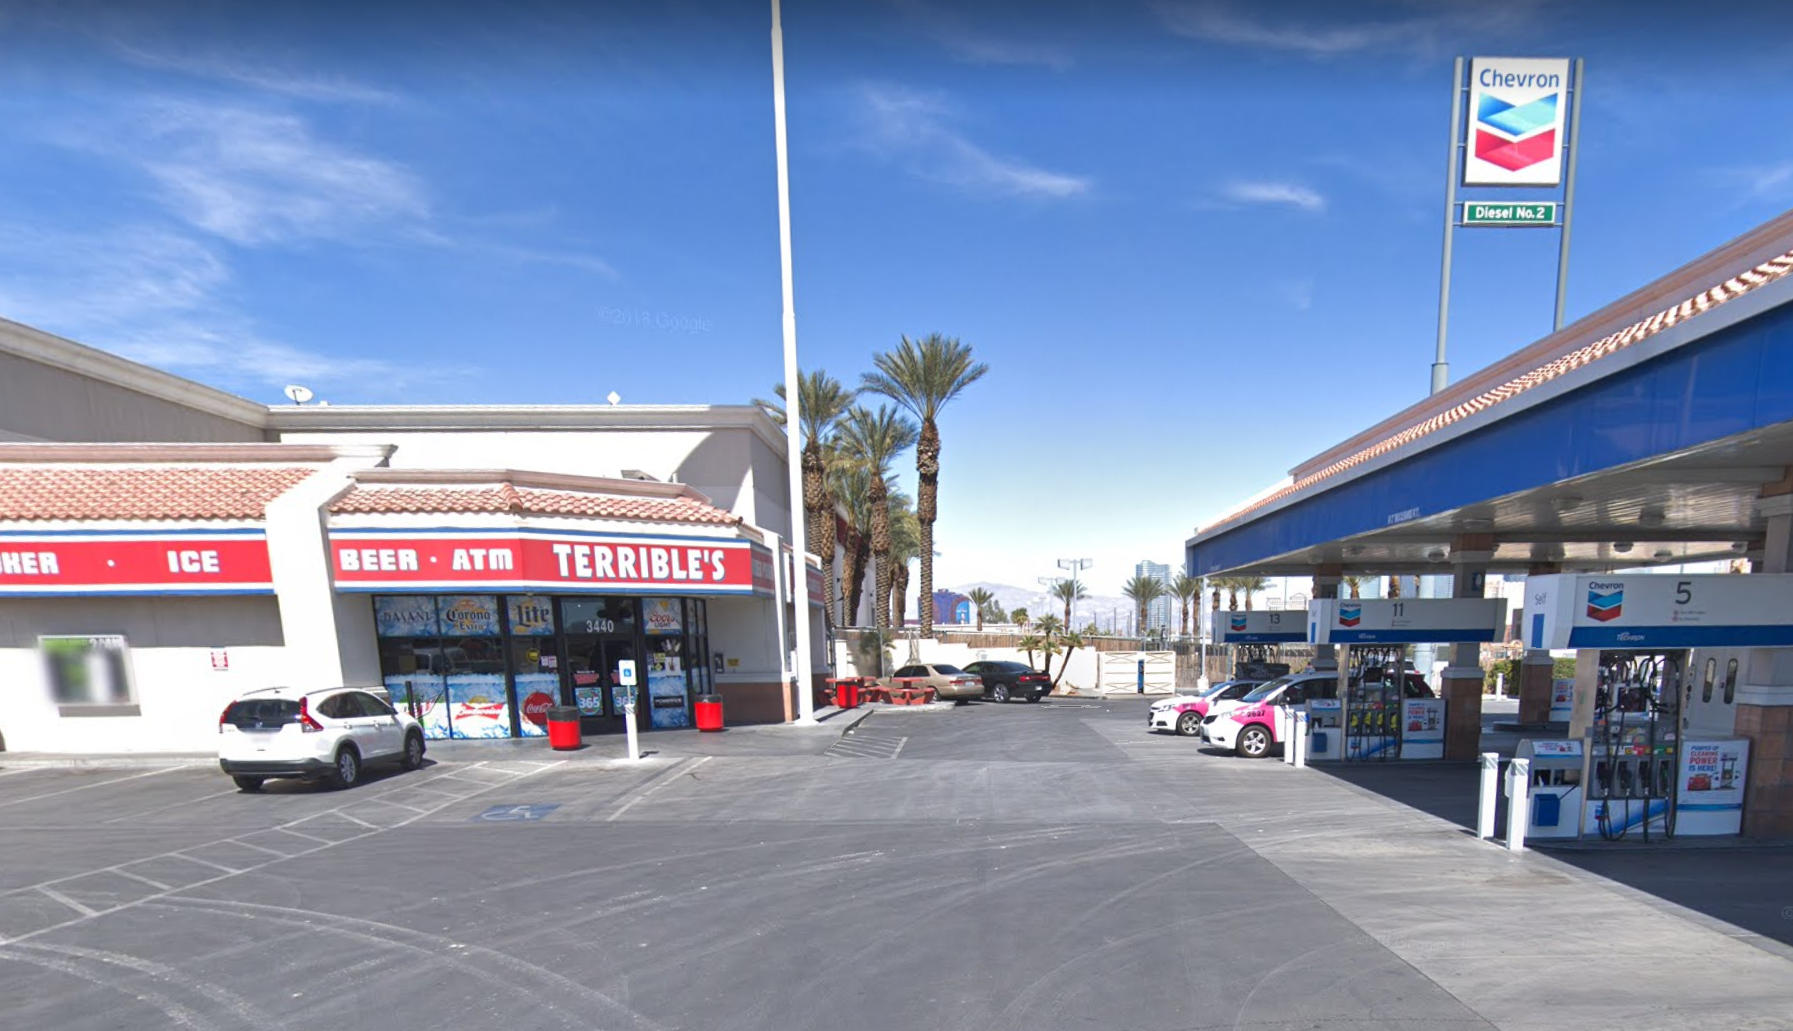 hilt-bitcoin-atm-location-terrible-chevron-w-russell-road.PNG